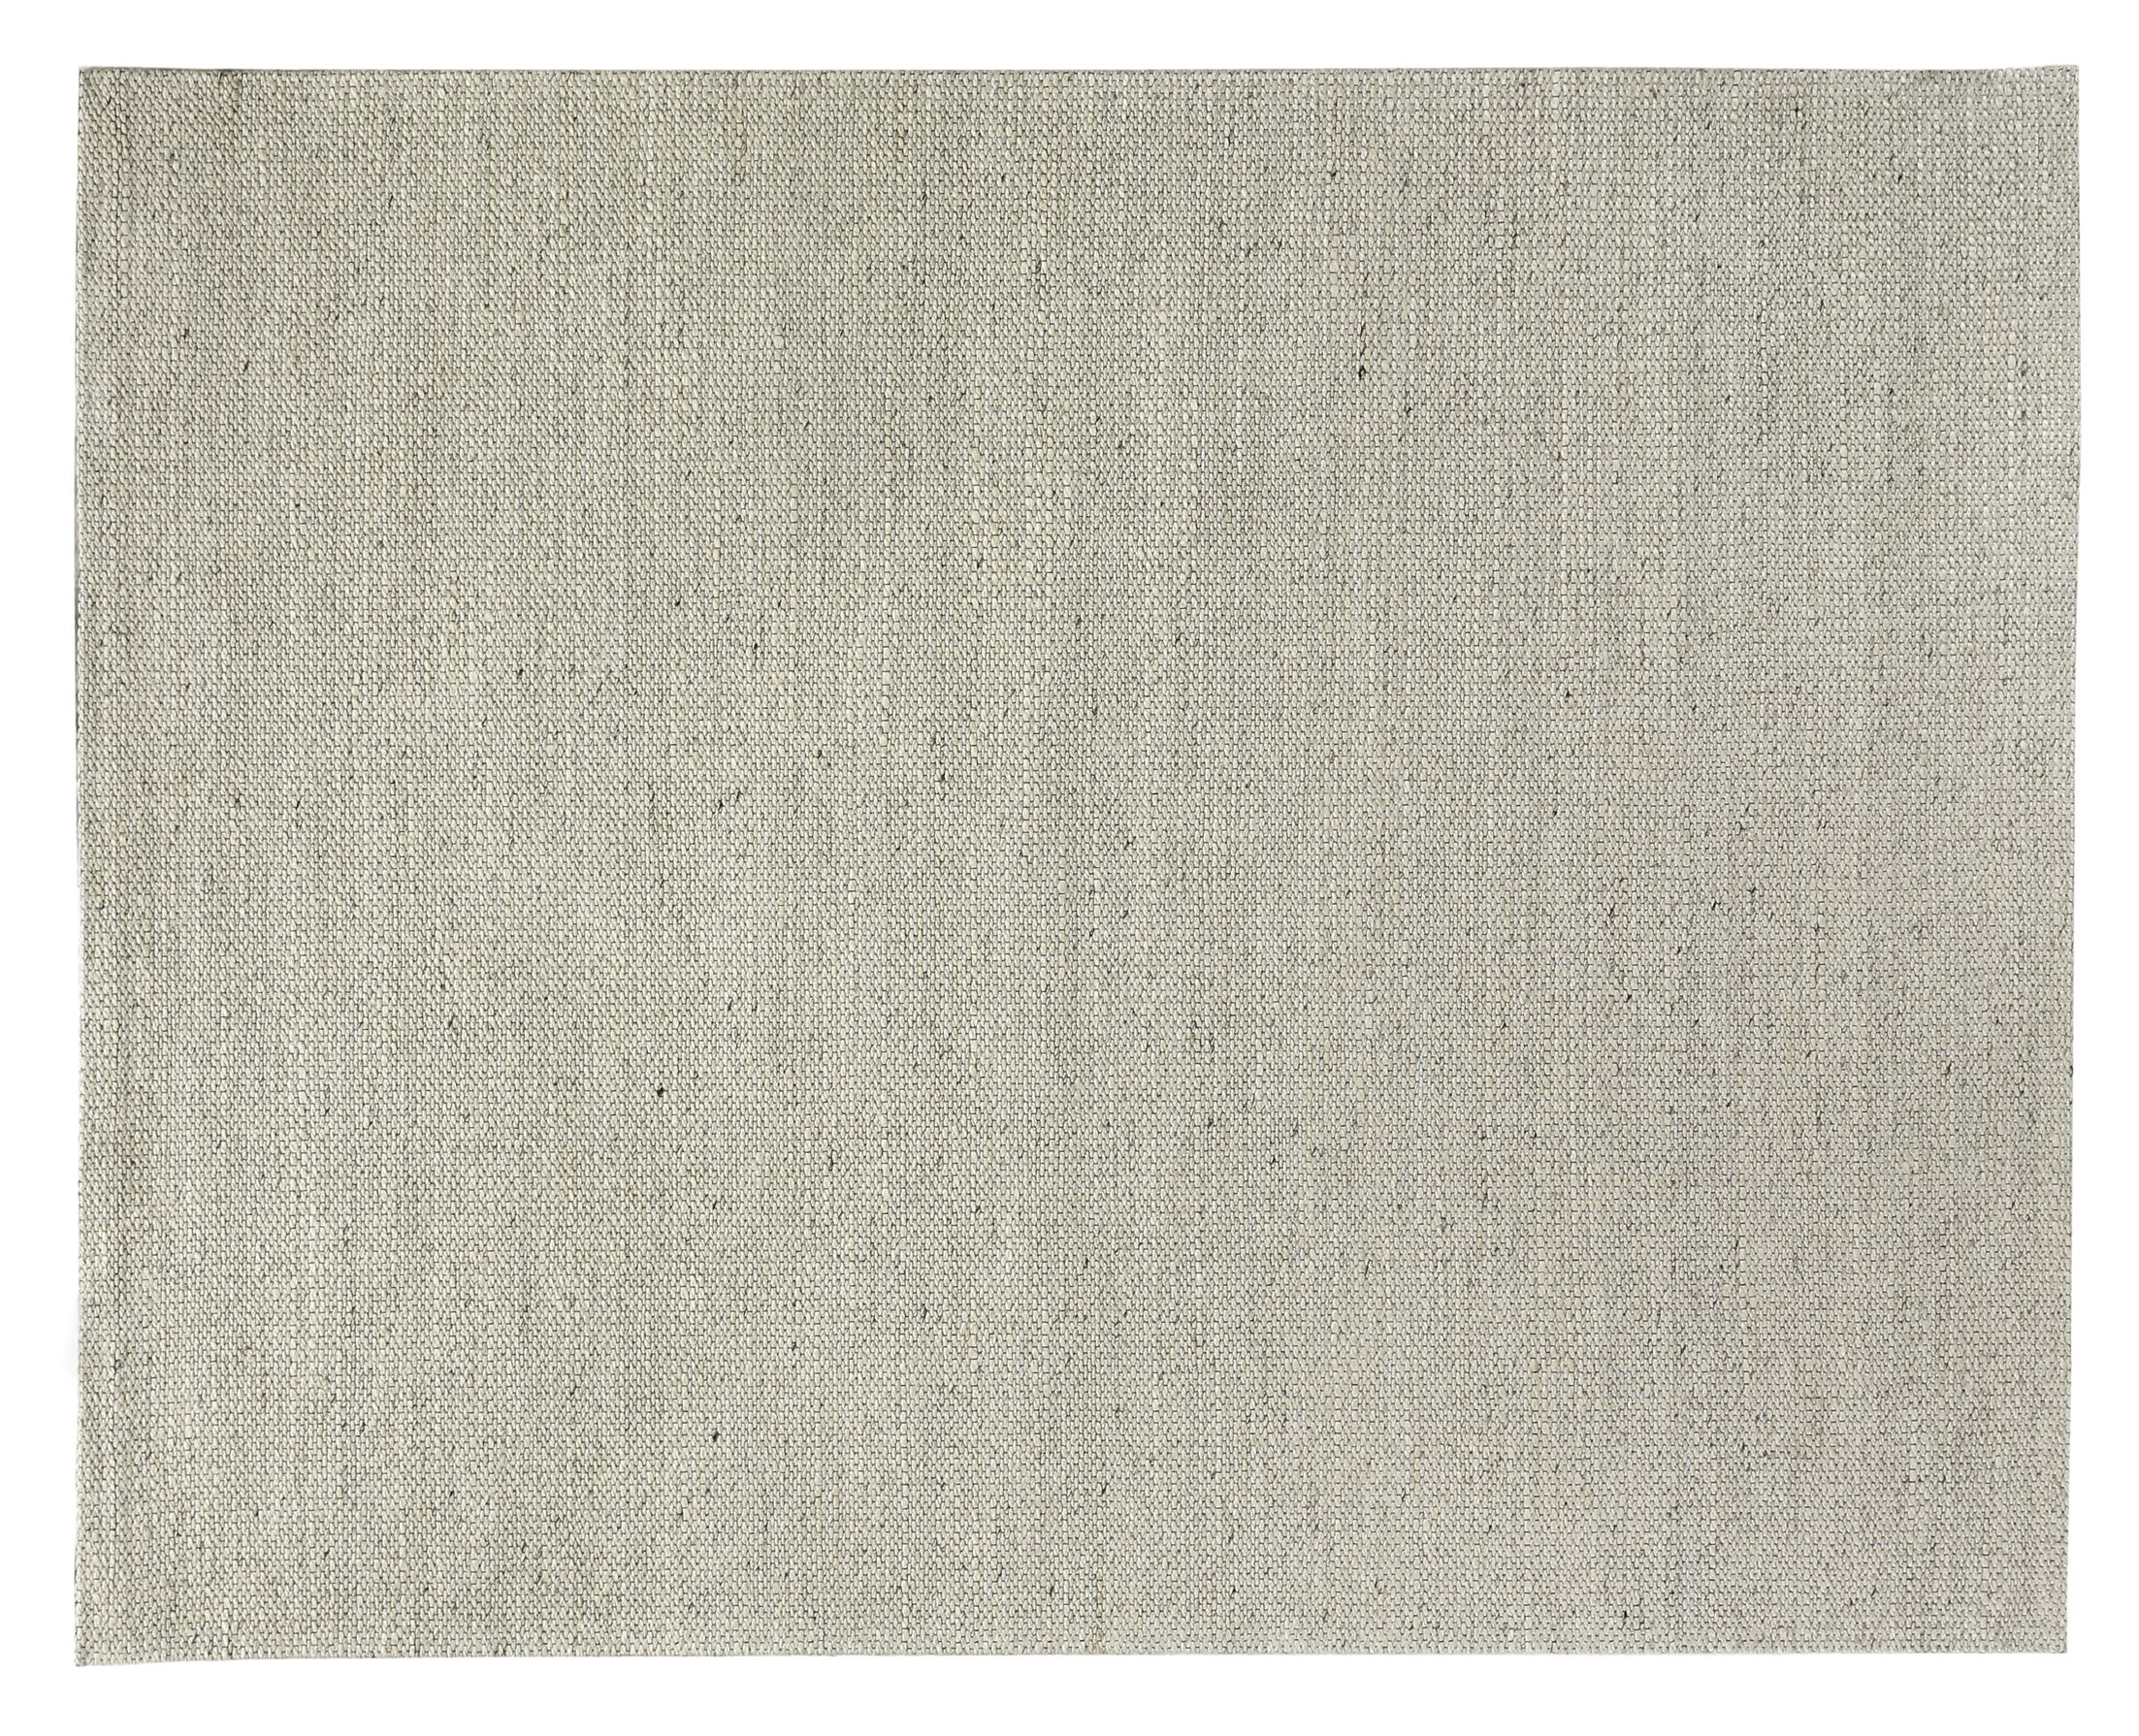 Crestwood Hand-Woven Sand Area Rug Rug Size: Rectangle 6' x 9'